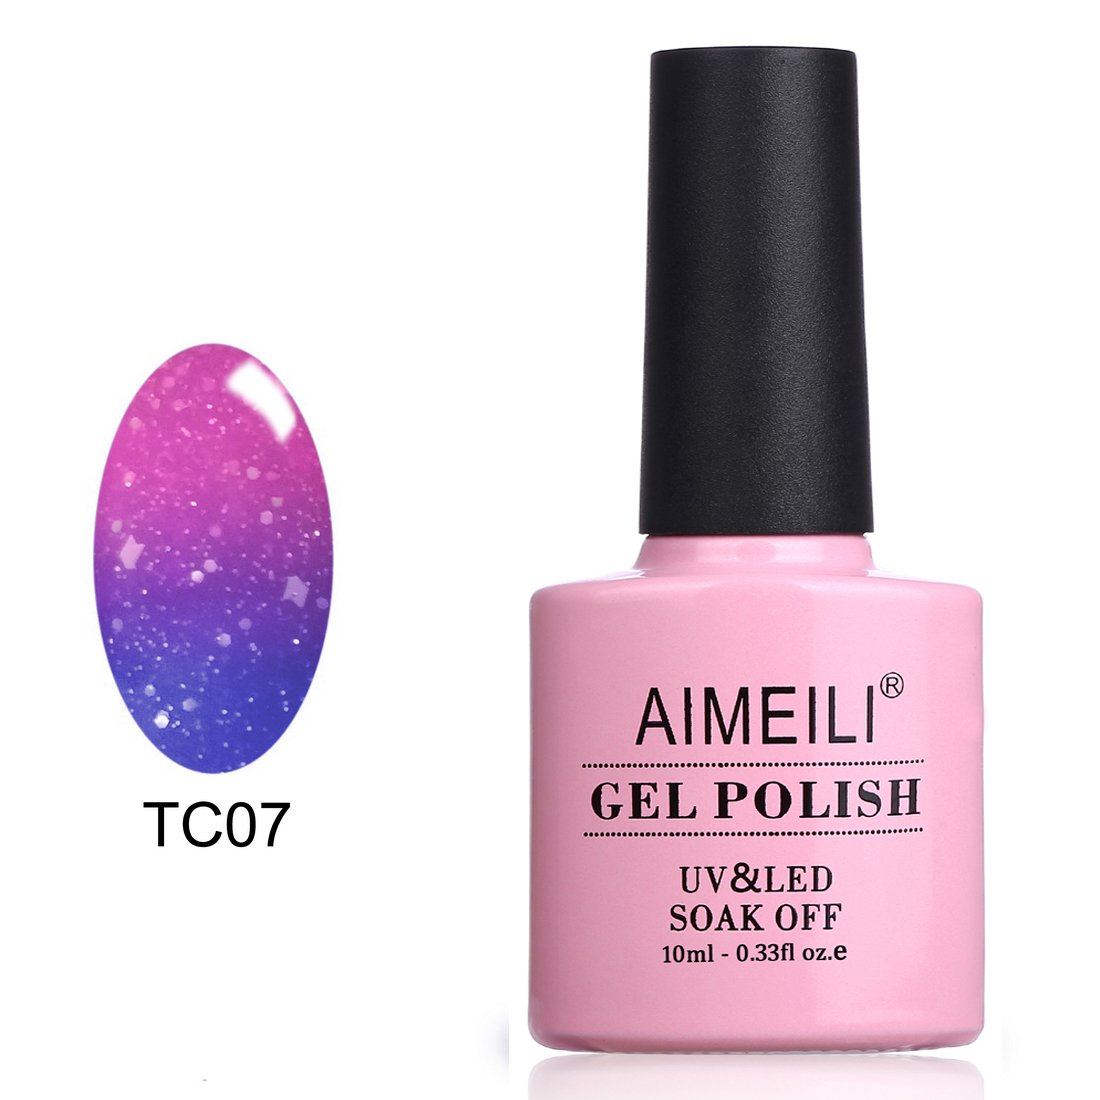 AIMEILI Soak Off UV LED Temperature Color Changing Chameleon Gel Nail Polish - Aqua Mist (TC07) 10ml